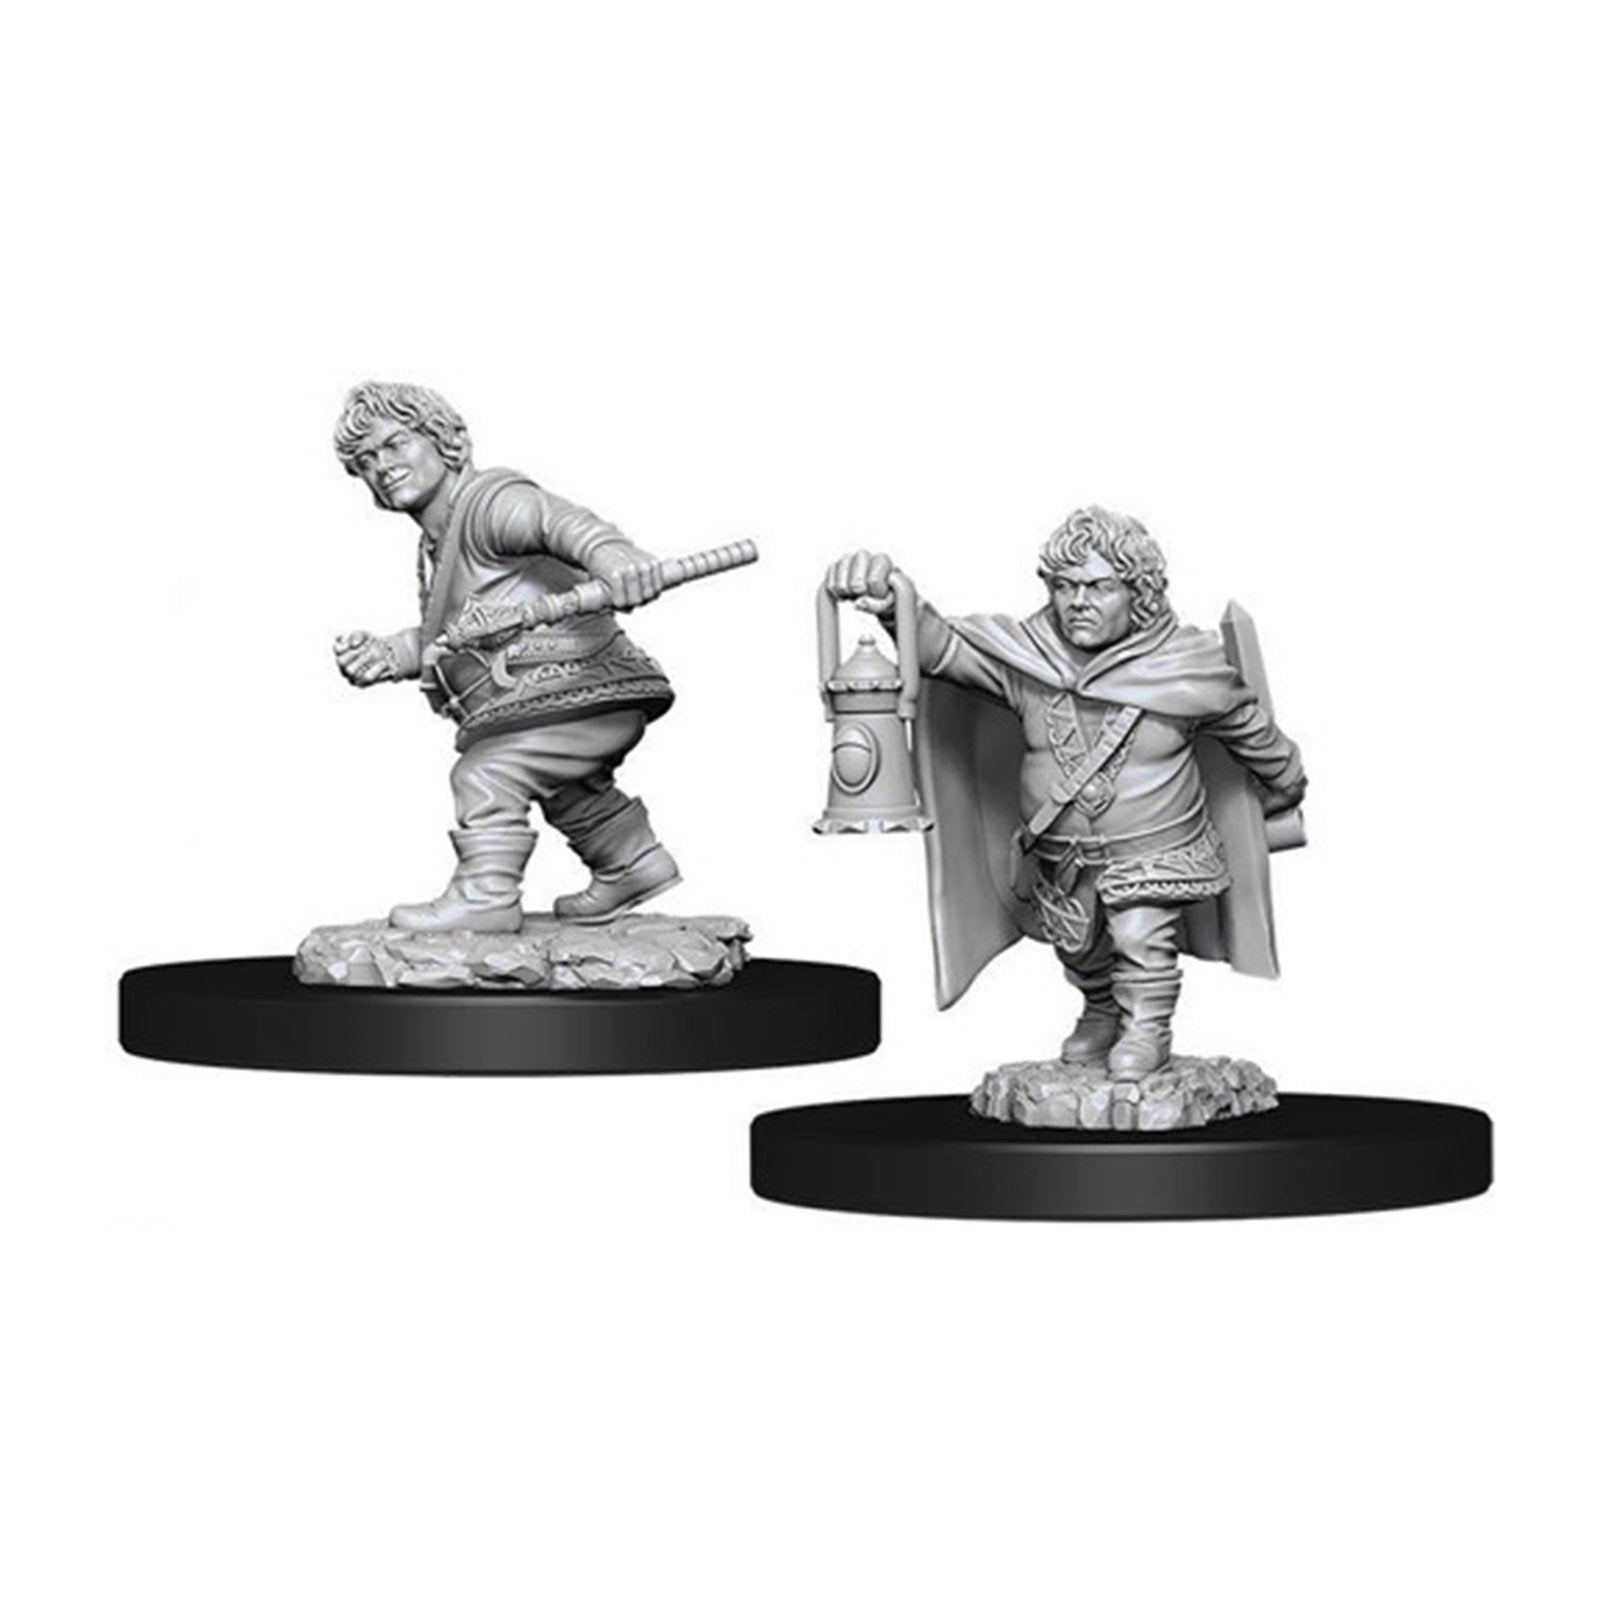 Dungeons And Dragons Male Halfling Rogue Miniatures Radar Toys Download files and build them with your 3d printer, laser cutter, or cnc. dungeons and dragons male halfling rogue nolzur s miniatures